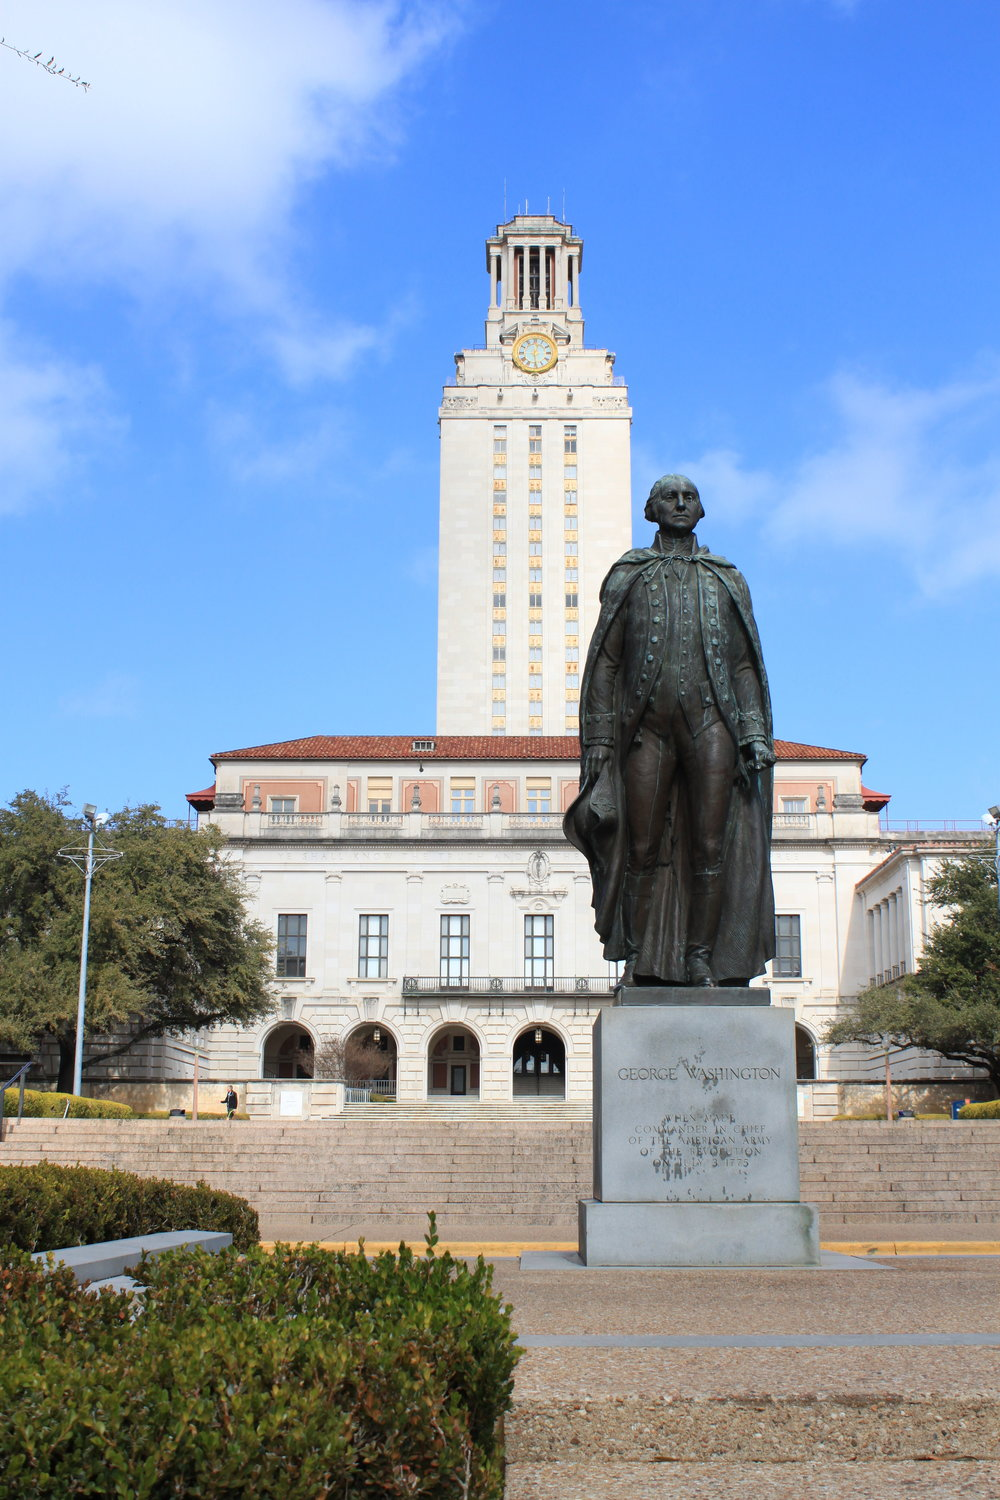 The Myth of the UT Tower -